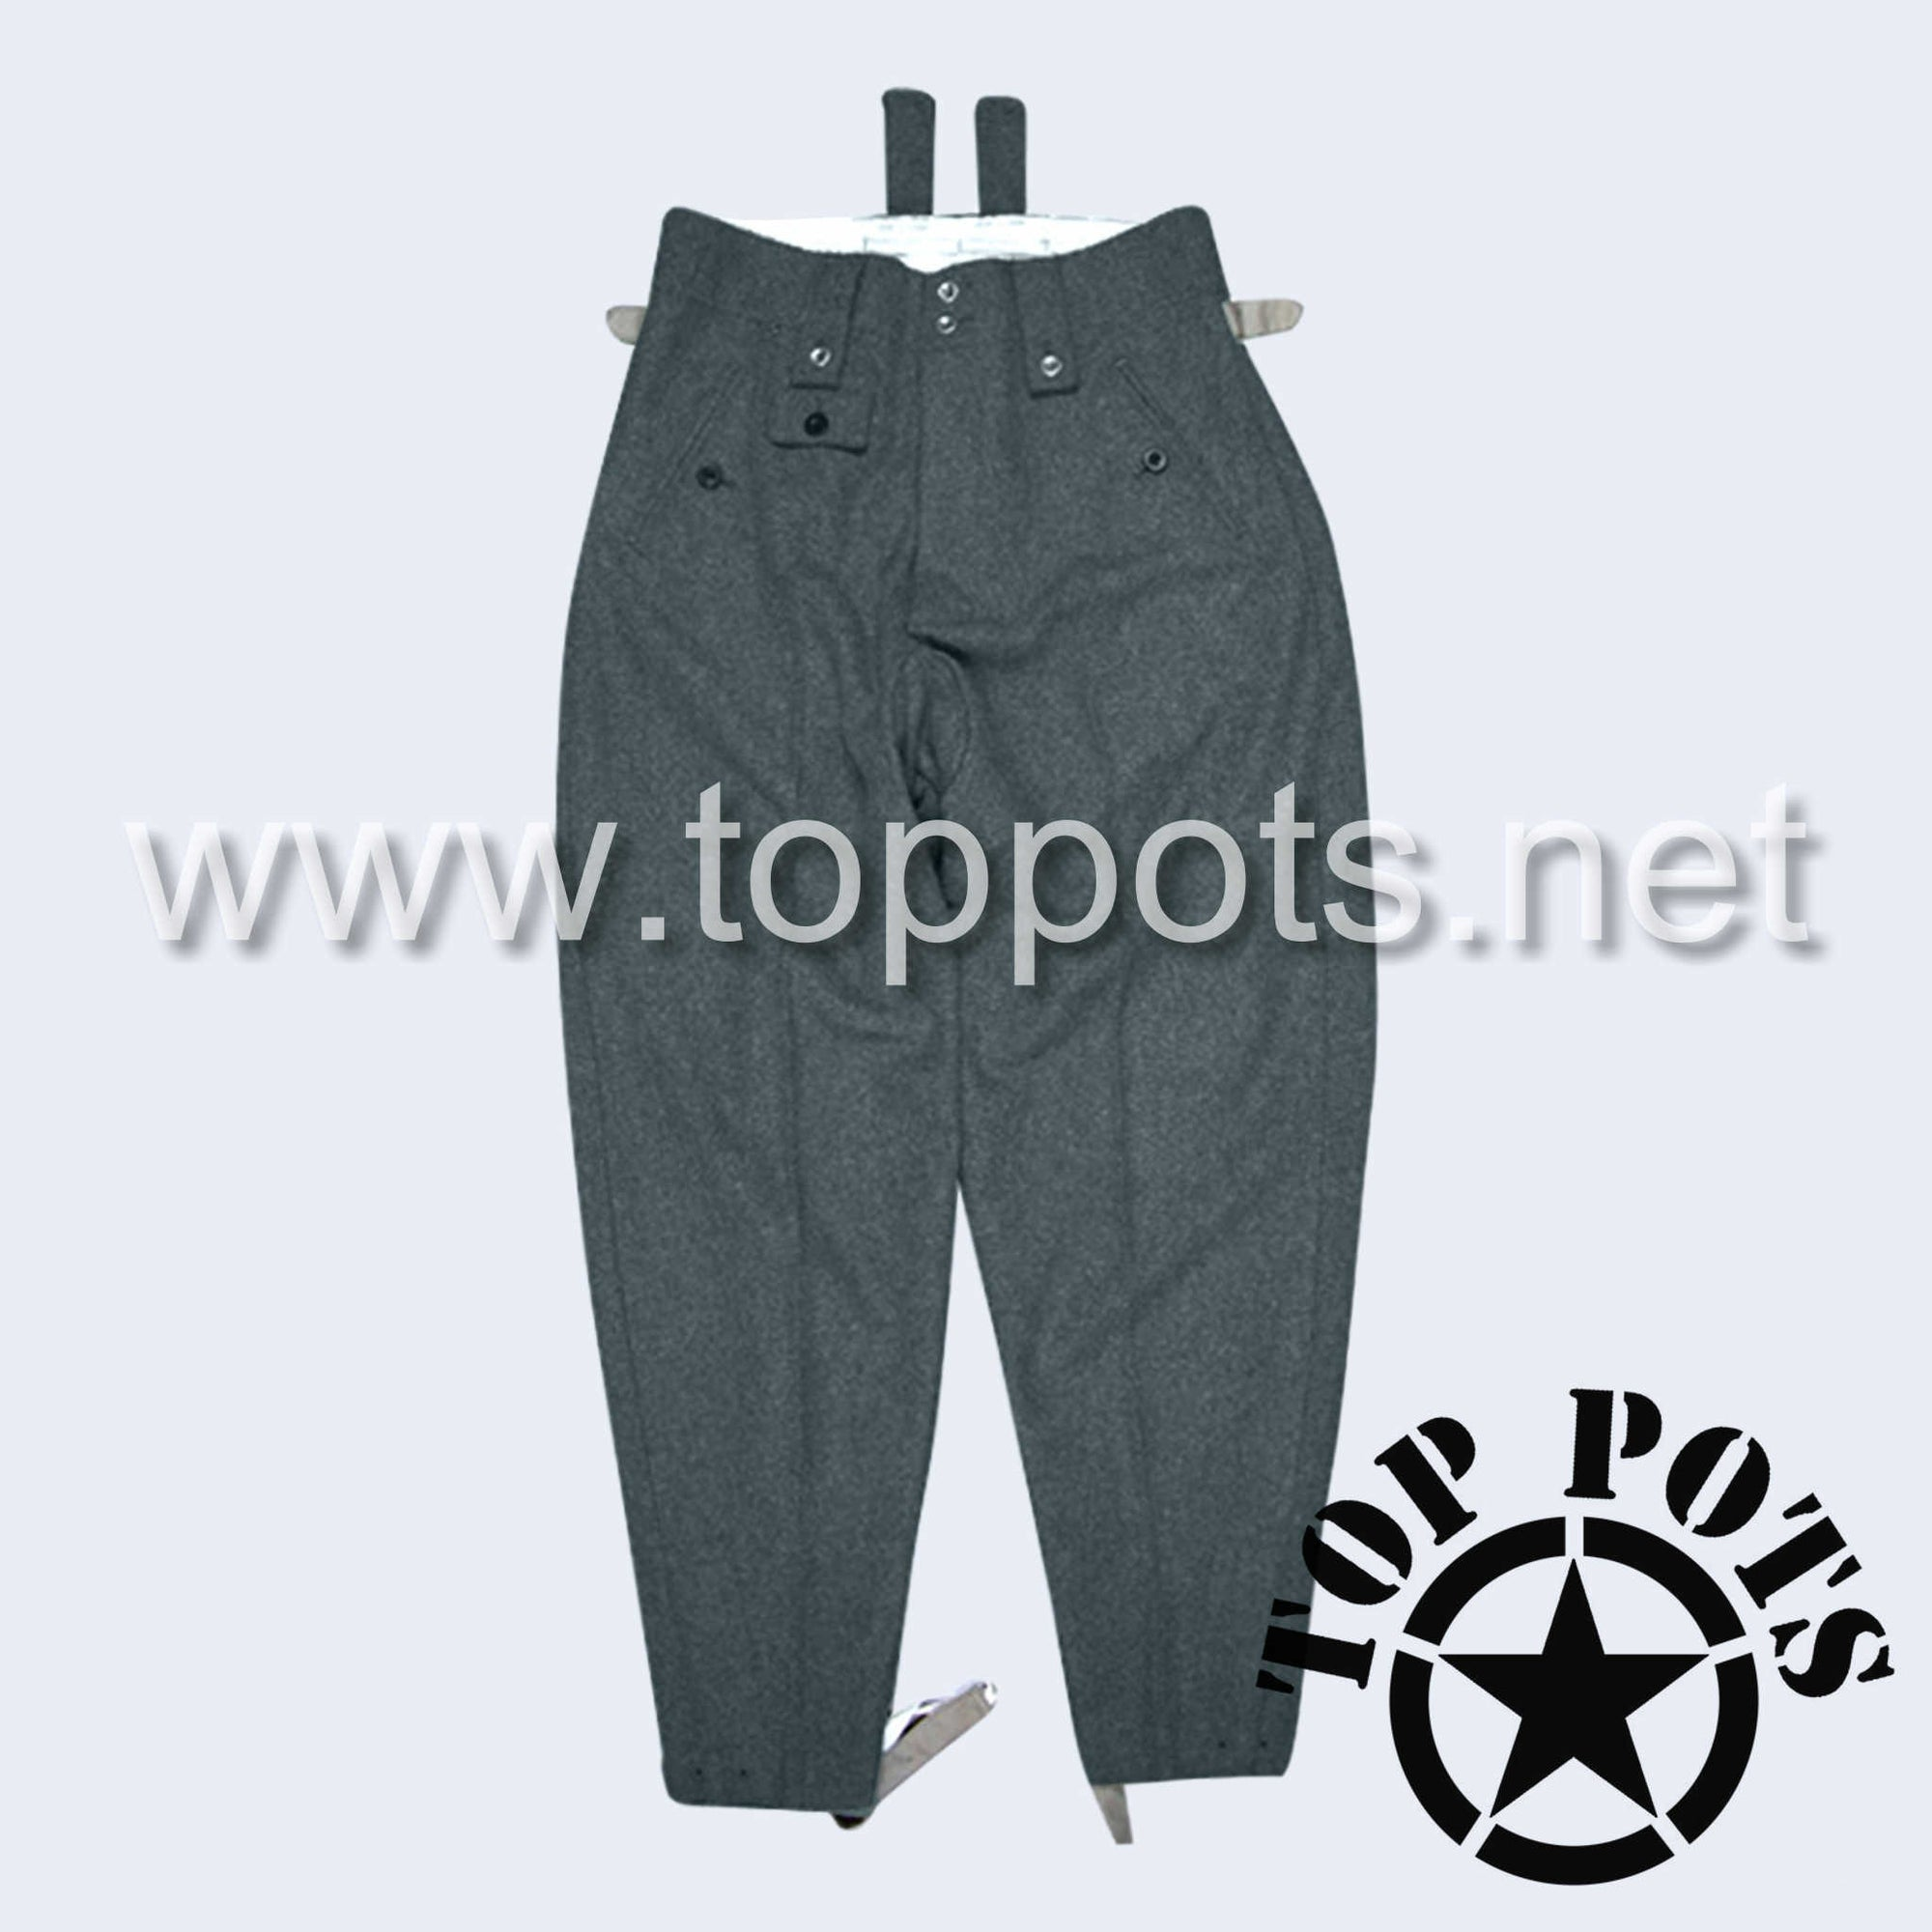 WWII German Army M1943 Waffen SS Uniform Enlisted Trouser Pants Blue-Green Grey Italian Wool (Keilhosen)